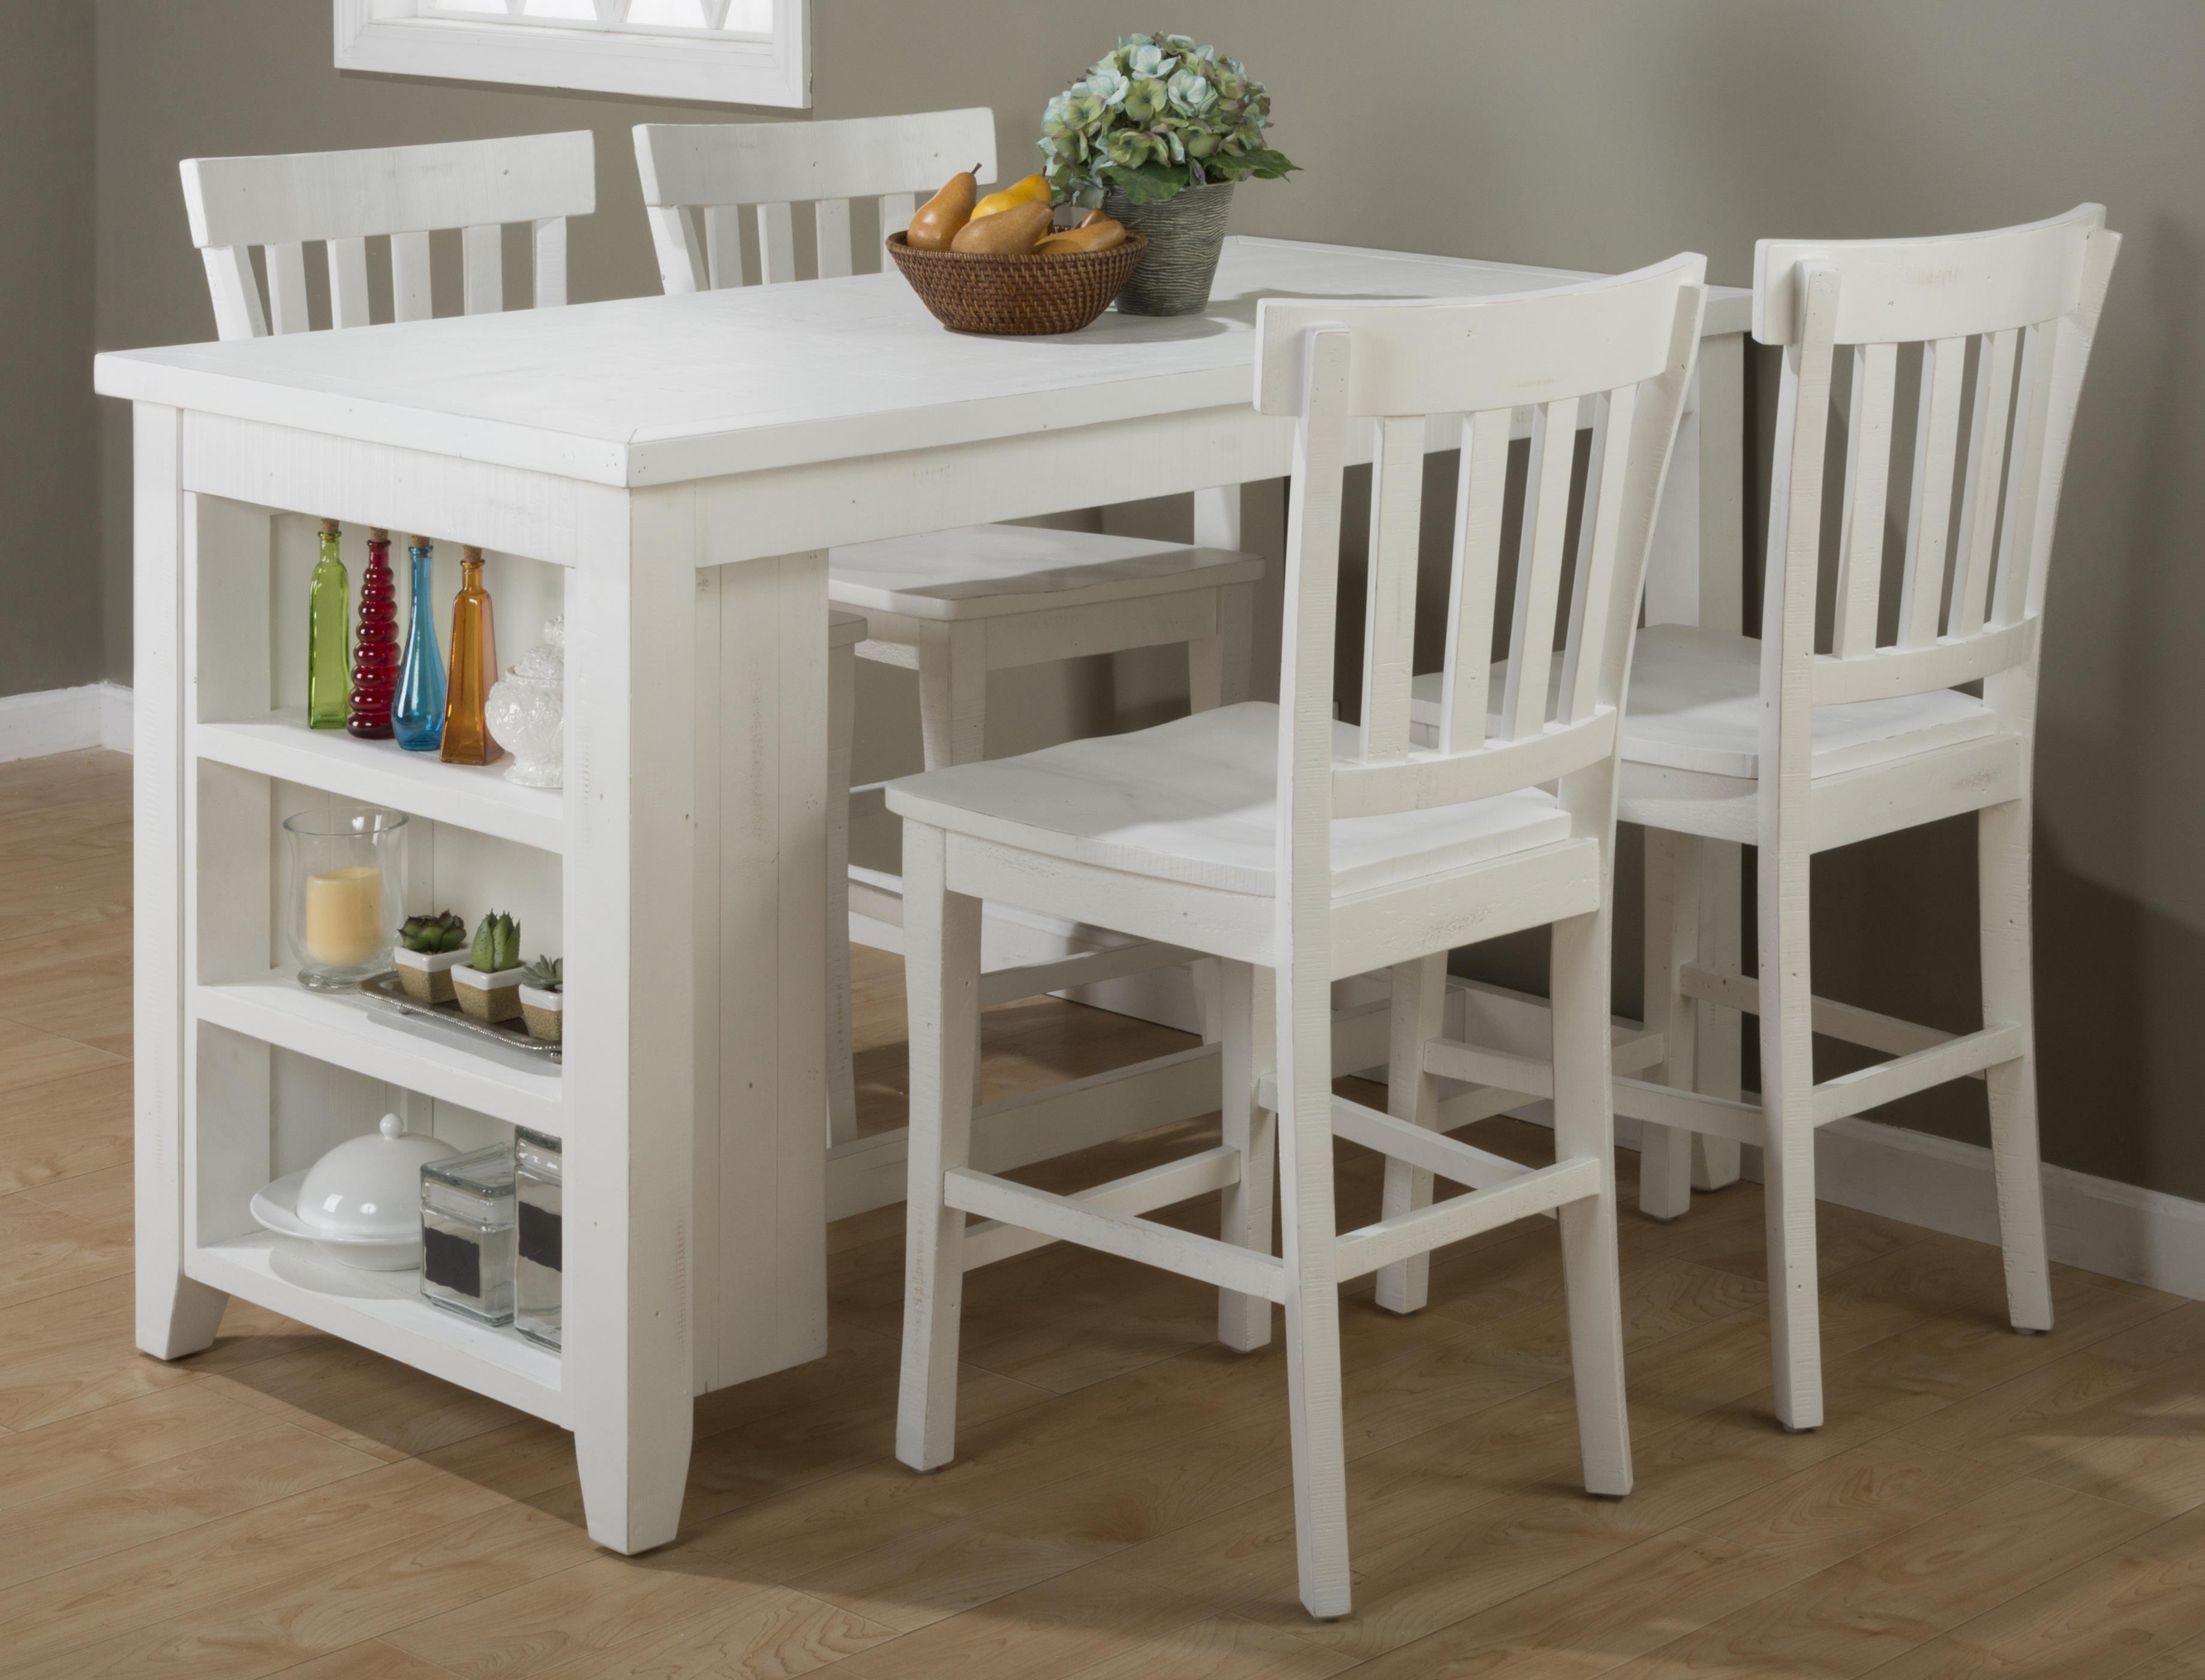 Jofran Island Nook Reclaimed Pine Counter Height Table Set - Item Number 647-60 : counter height table sets - pezcame.com